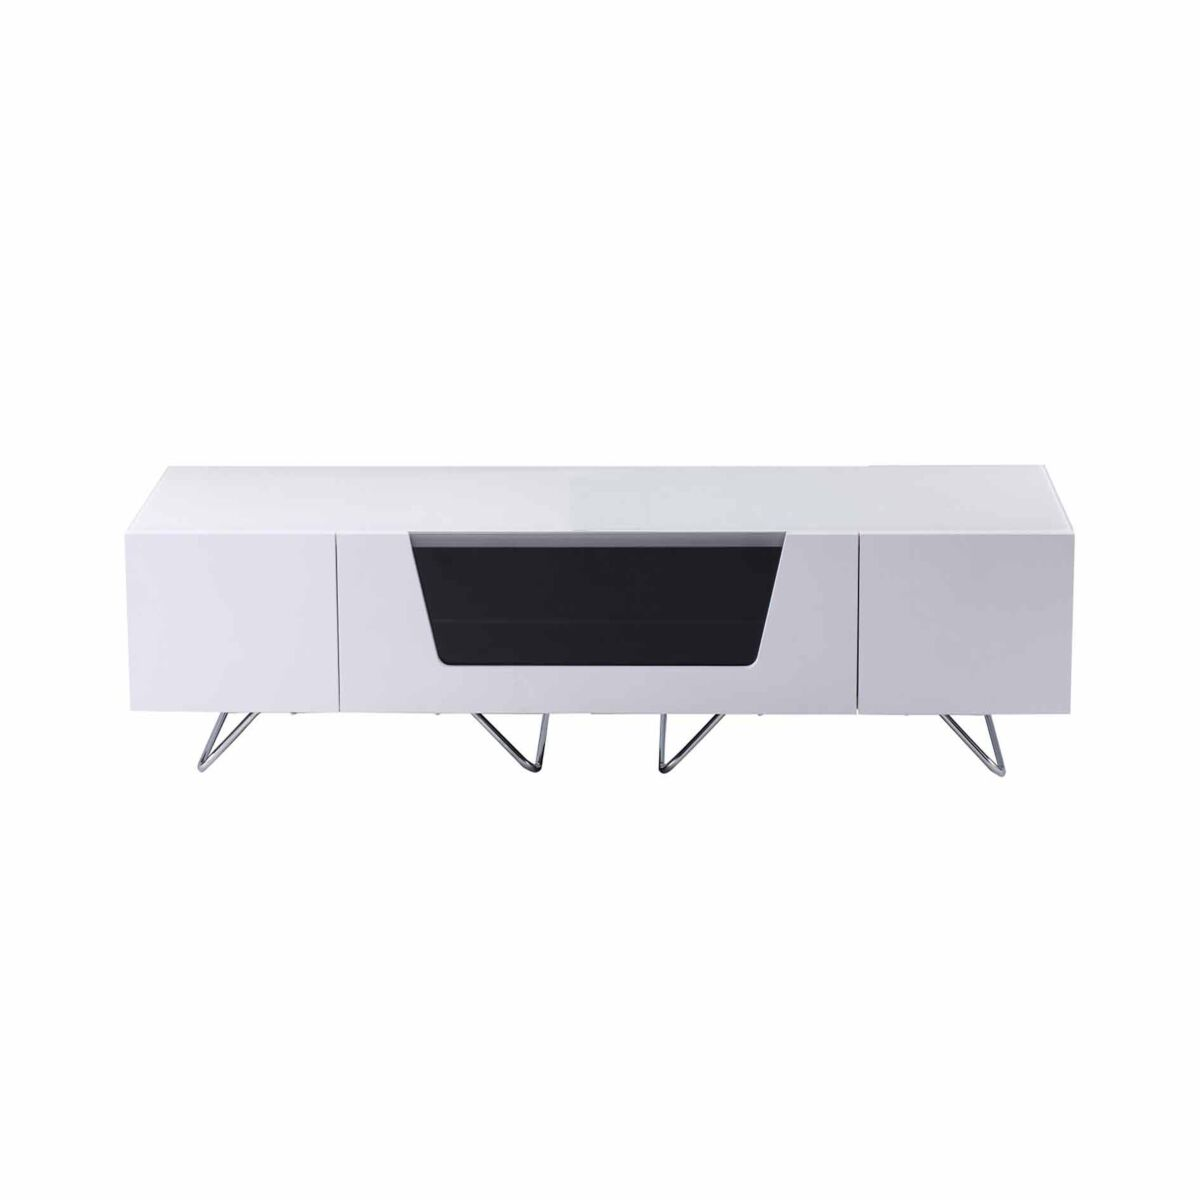 Alphason Chromium 1600 TV Cabinet